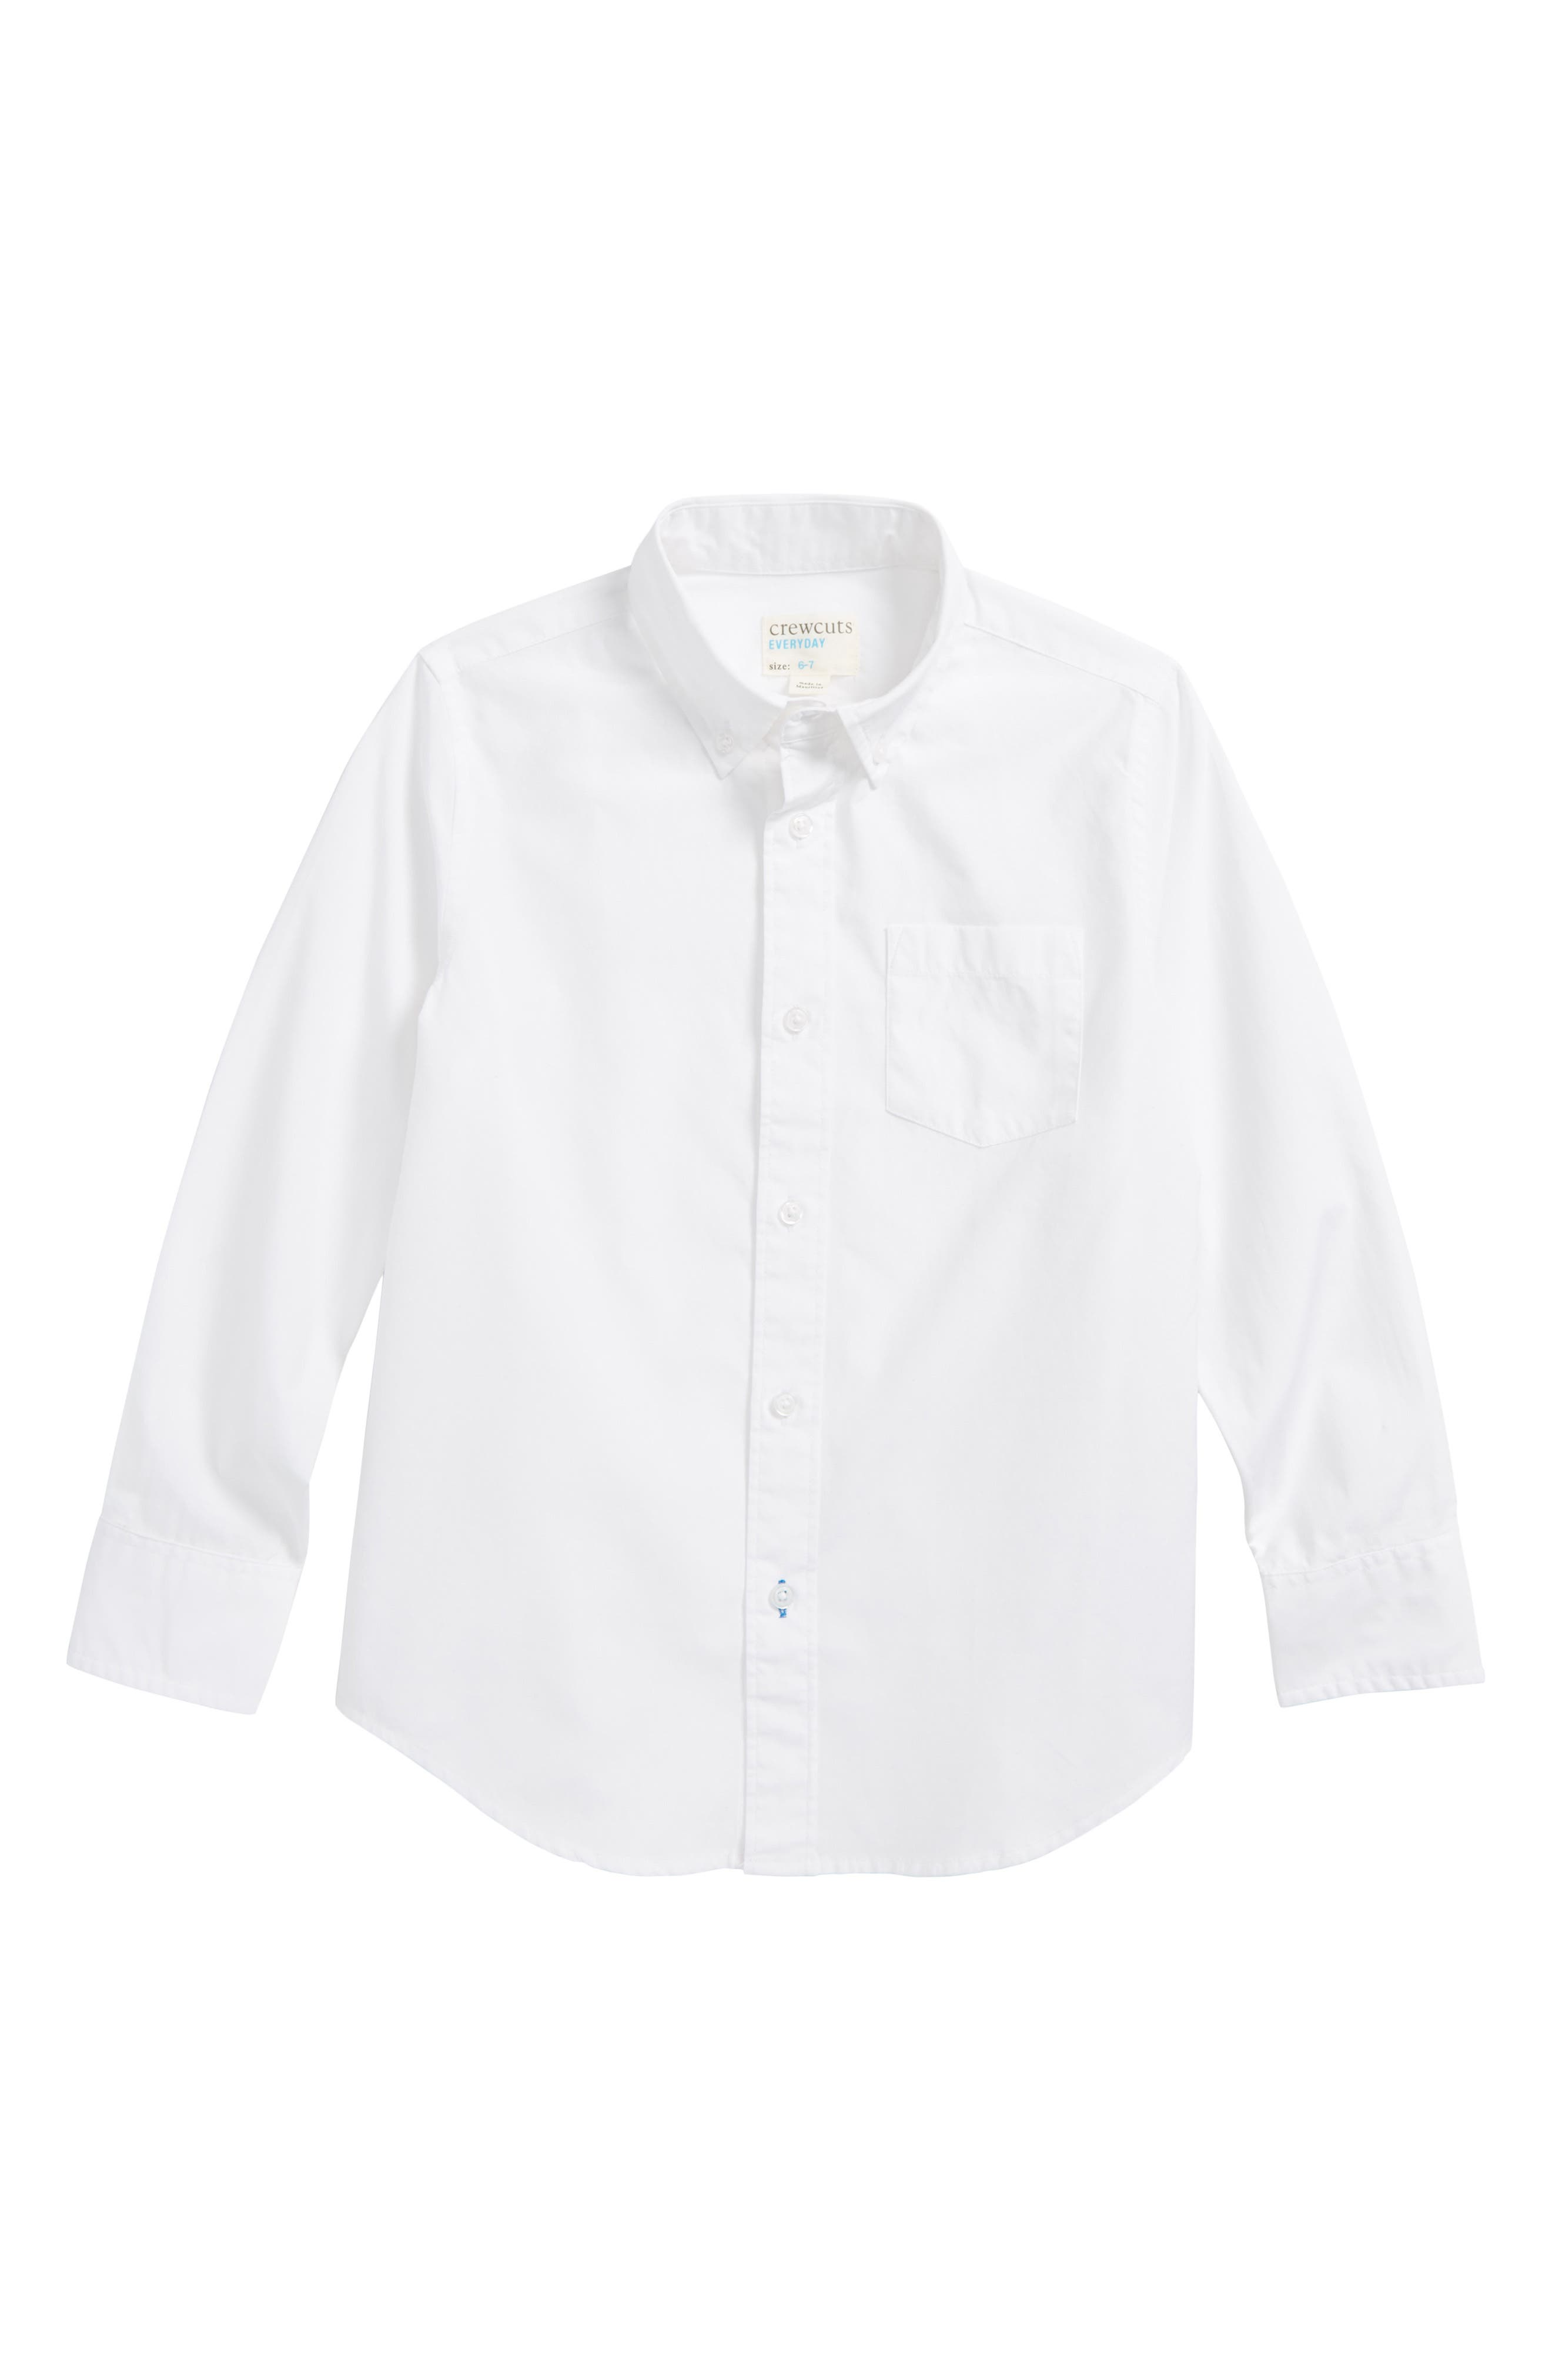 Everyday Button Down Sport Shirt,                         Main,                         color,